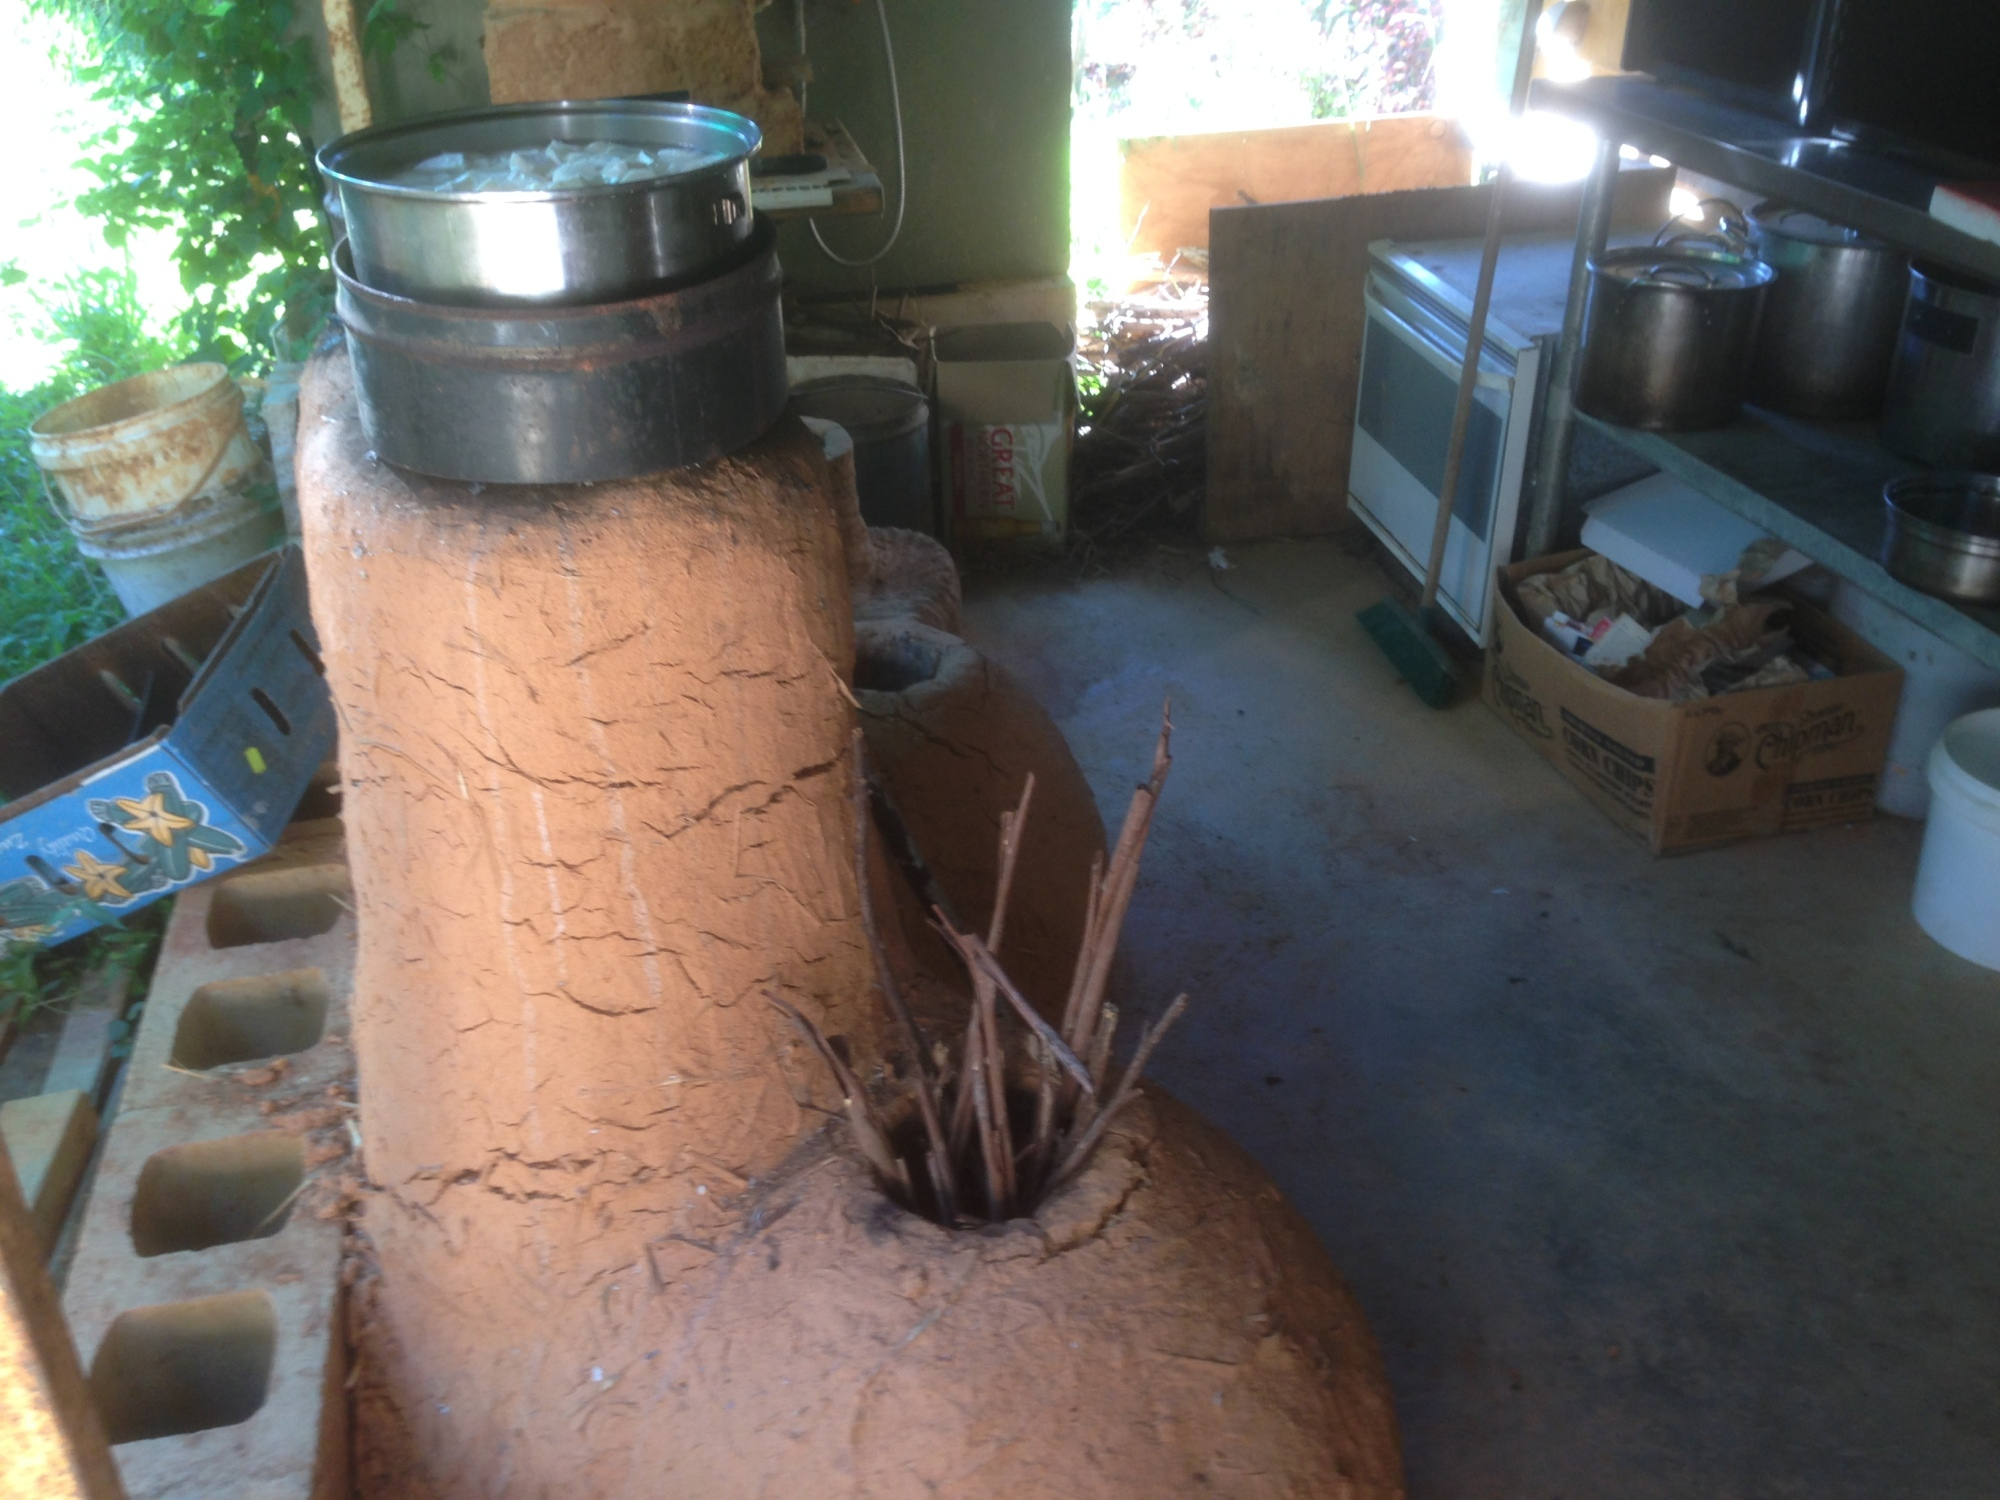 Tom Kendall uses a rocket stove to cook cassava at Maungaraeeda.